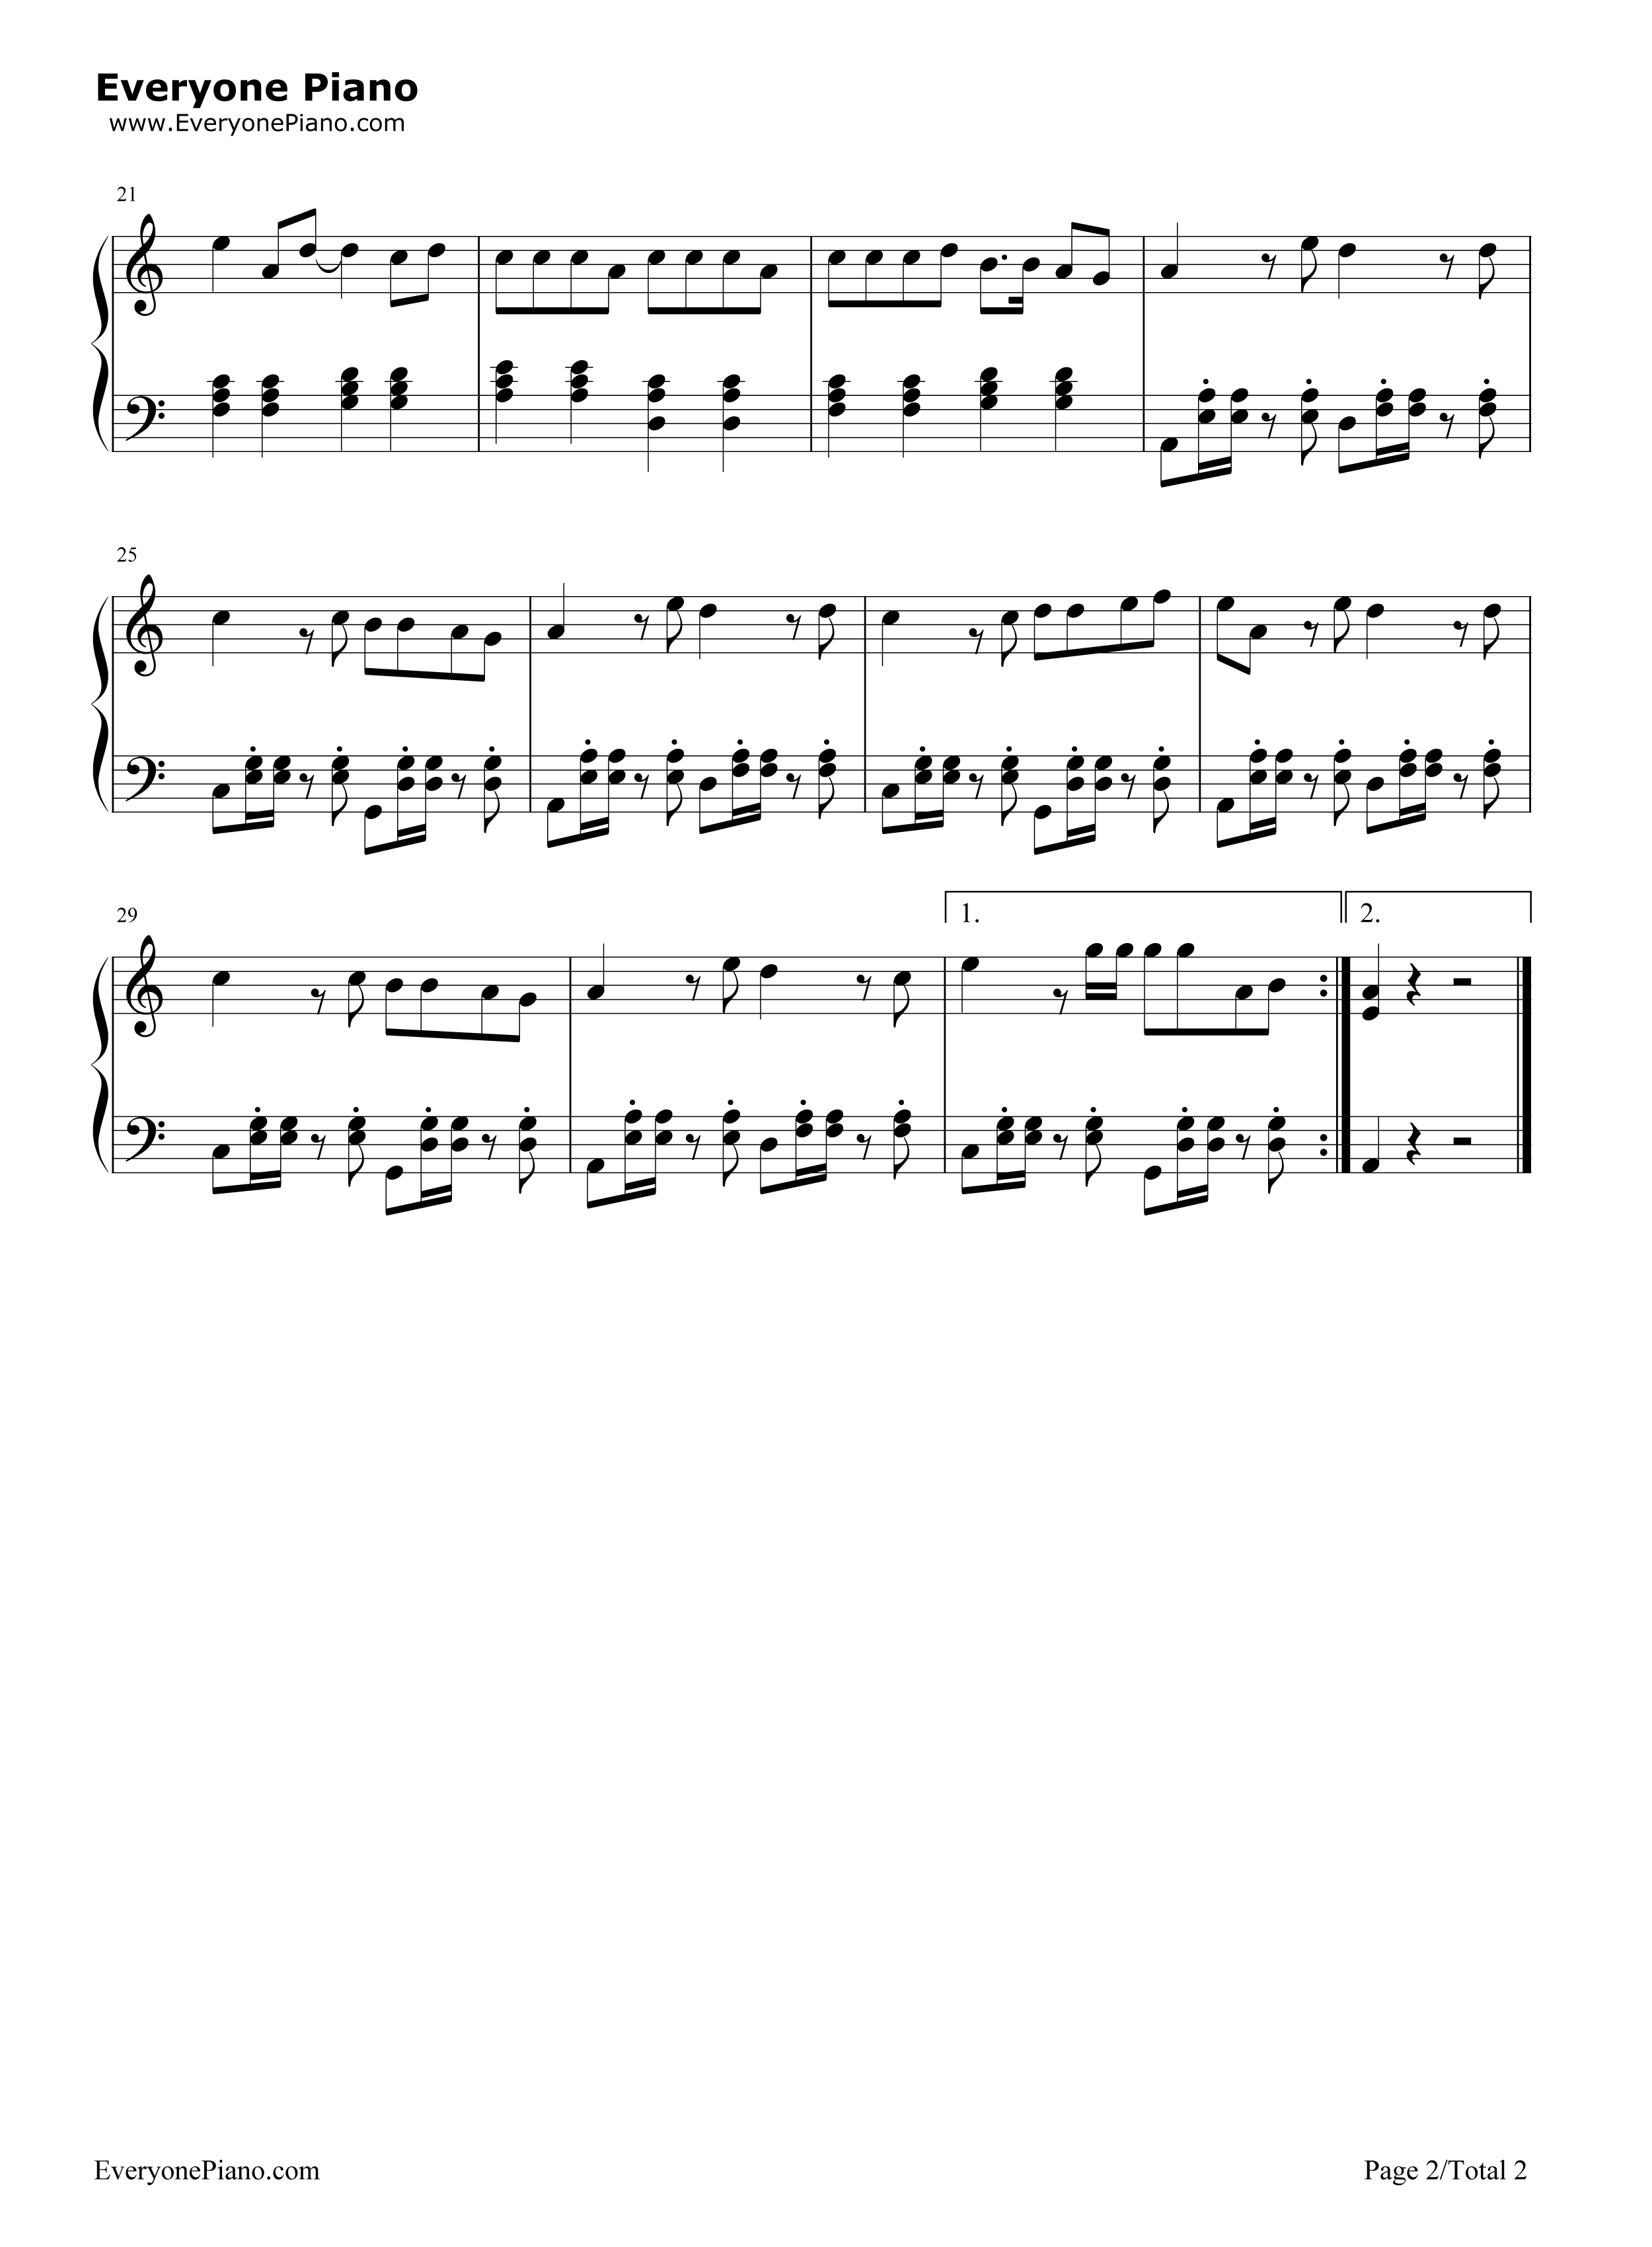 Panama matteo stave preview 2 free piano sheet music piano chords listen now print sheet panama matteo stave preview 2 hexwebz Gallery